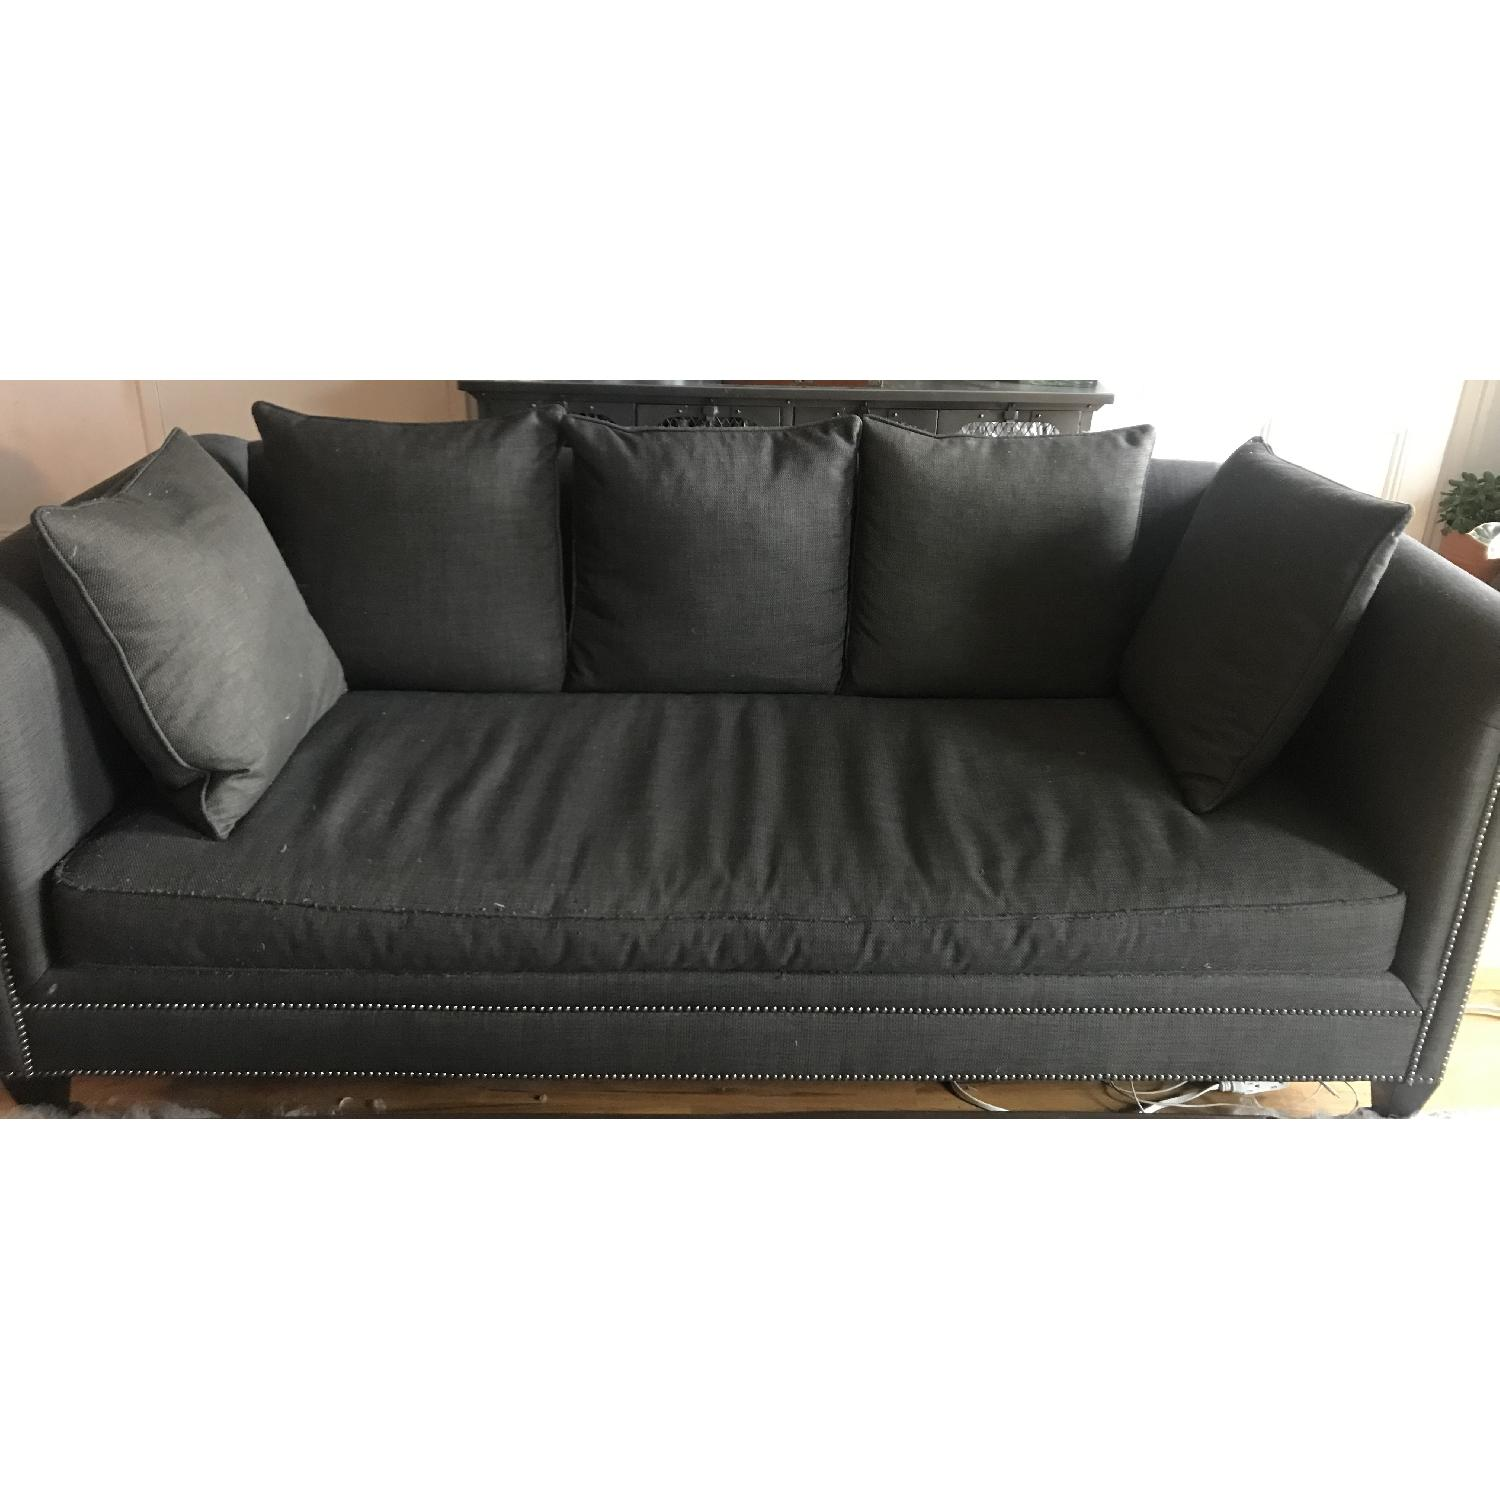 Crate & Barrel 3 Seater Down Filled Sofa - image-3